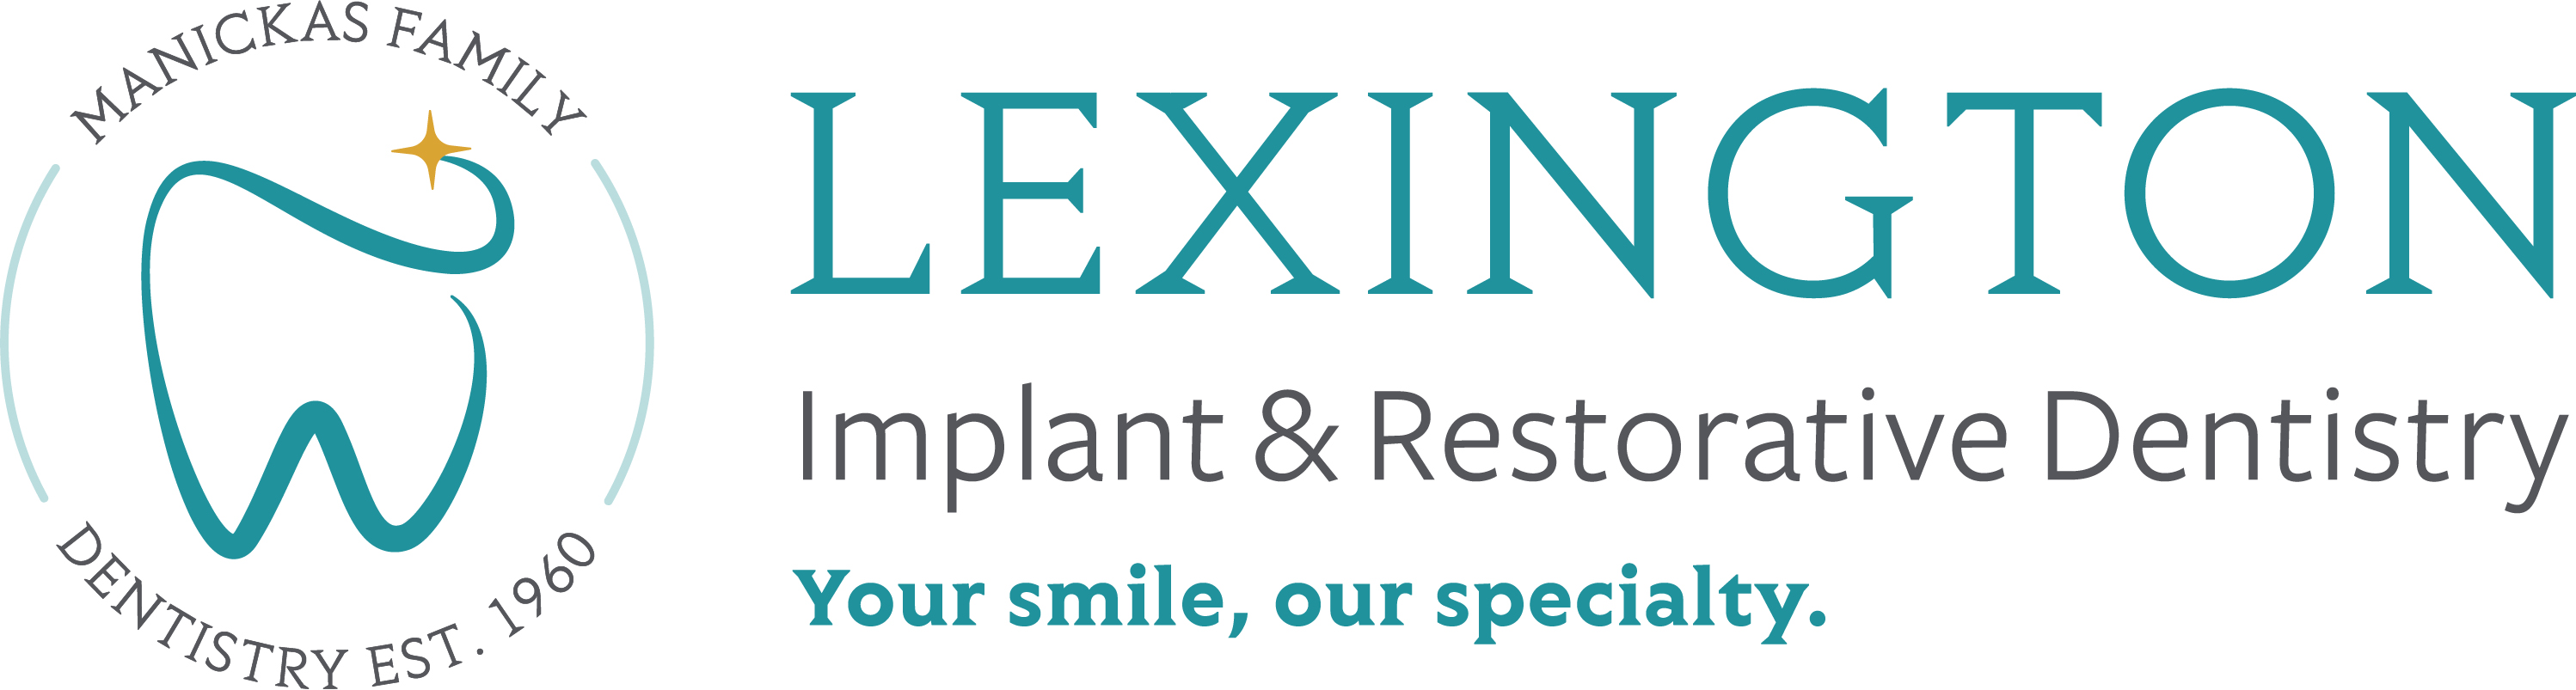 Lexington Implant and Restorative Dentistry